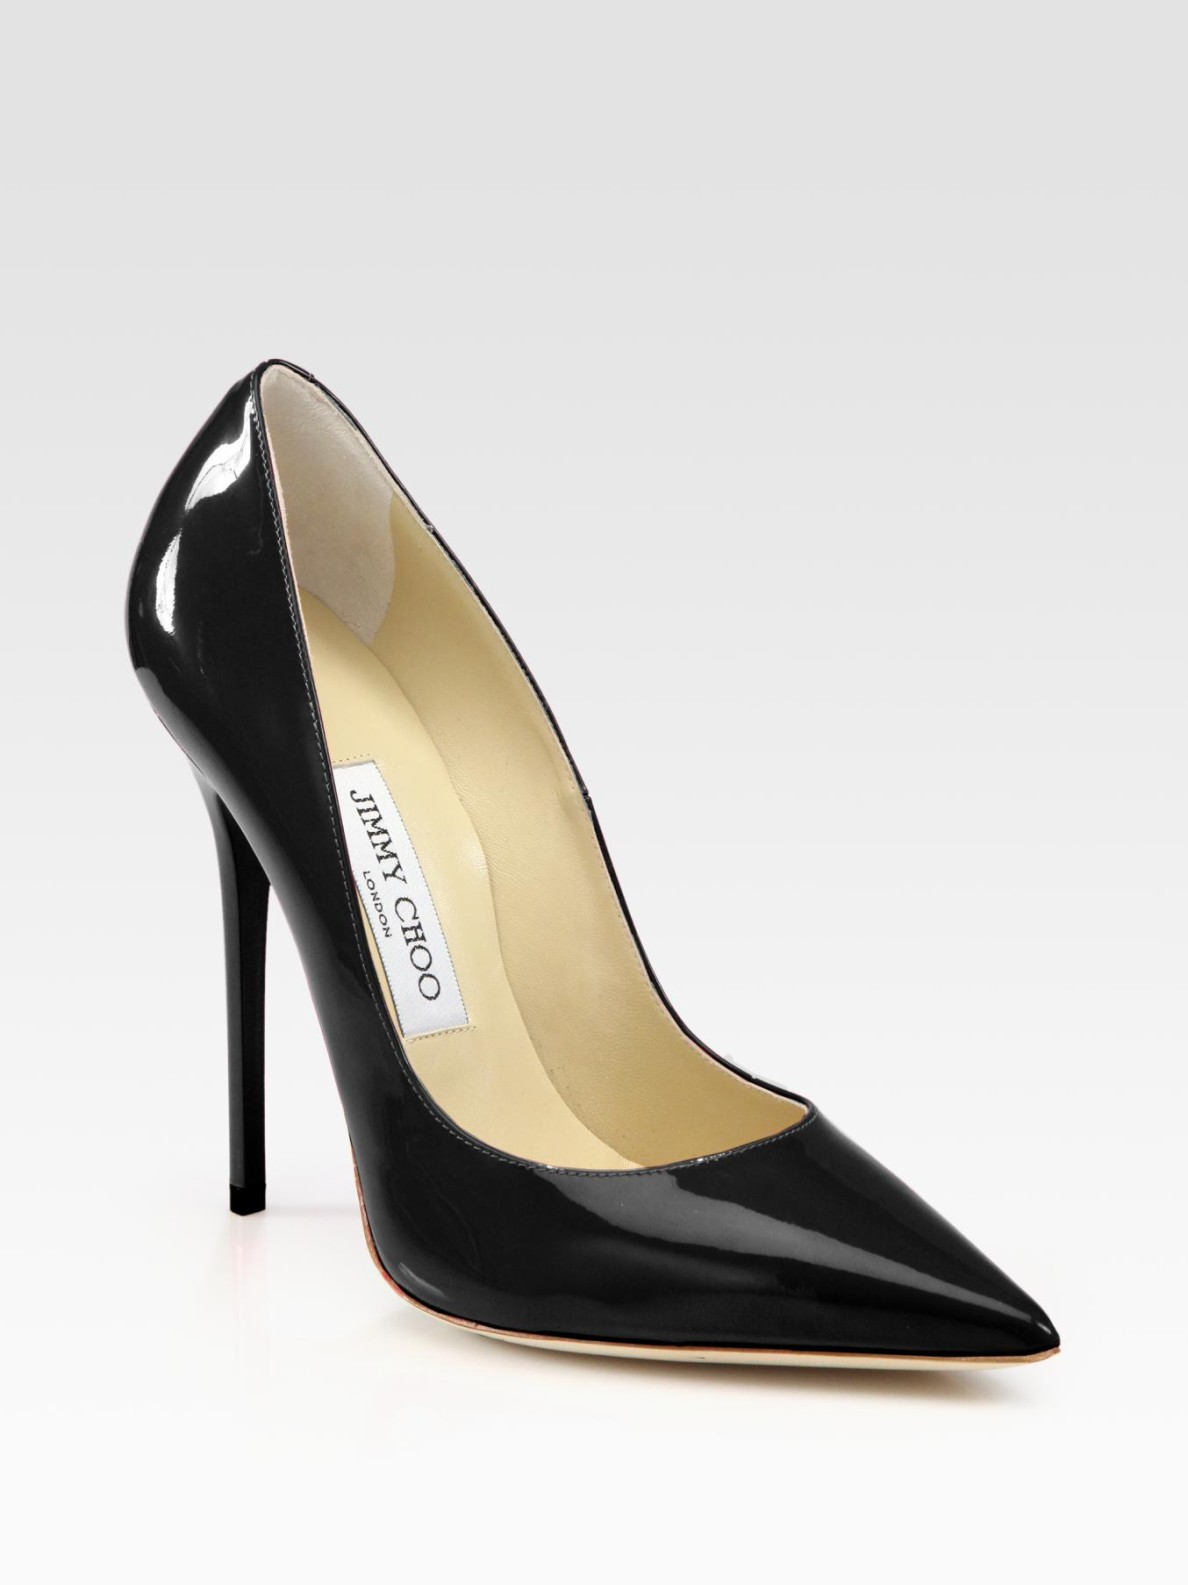 Jimmy choo Anouk Patent Leather Pump in Black   Lyst